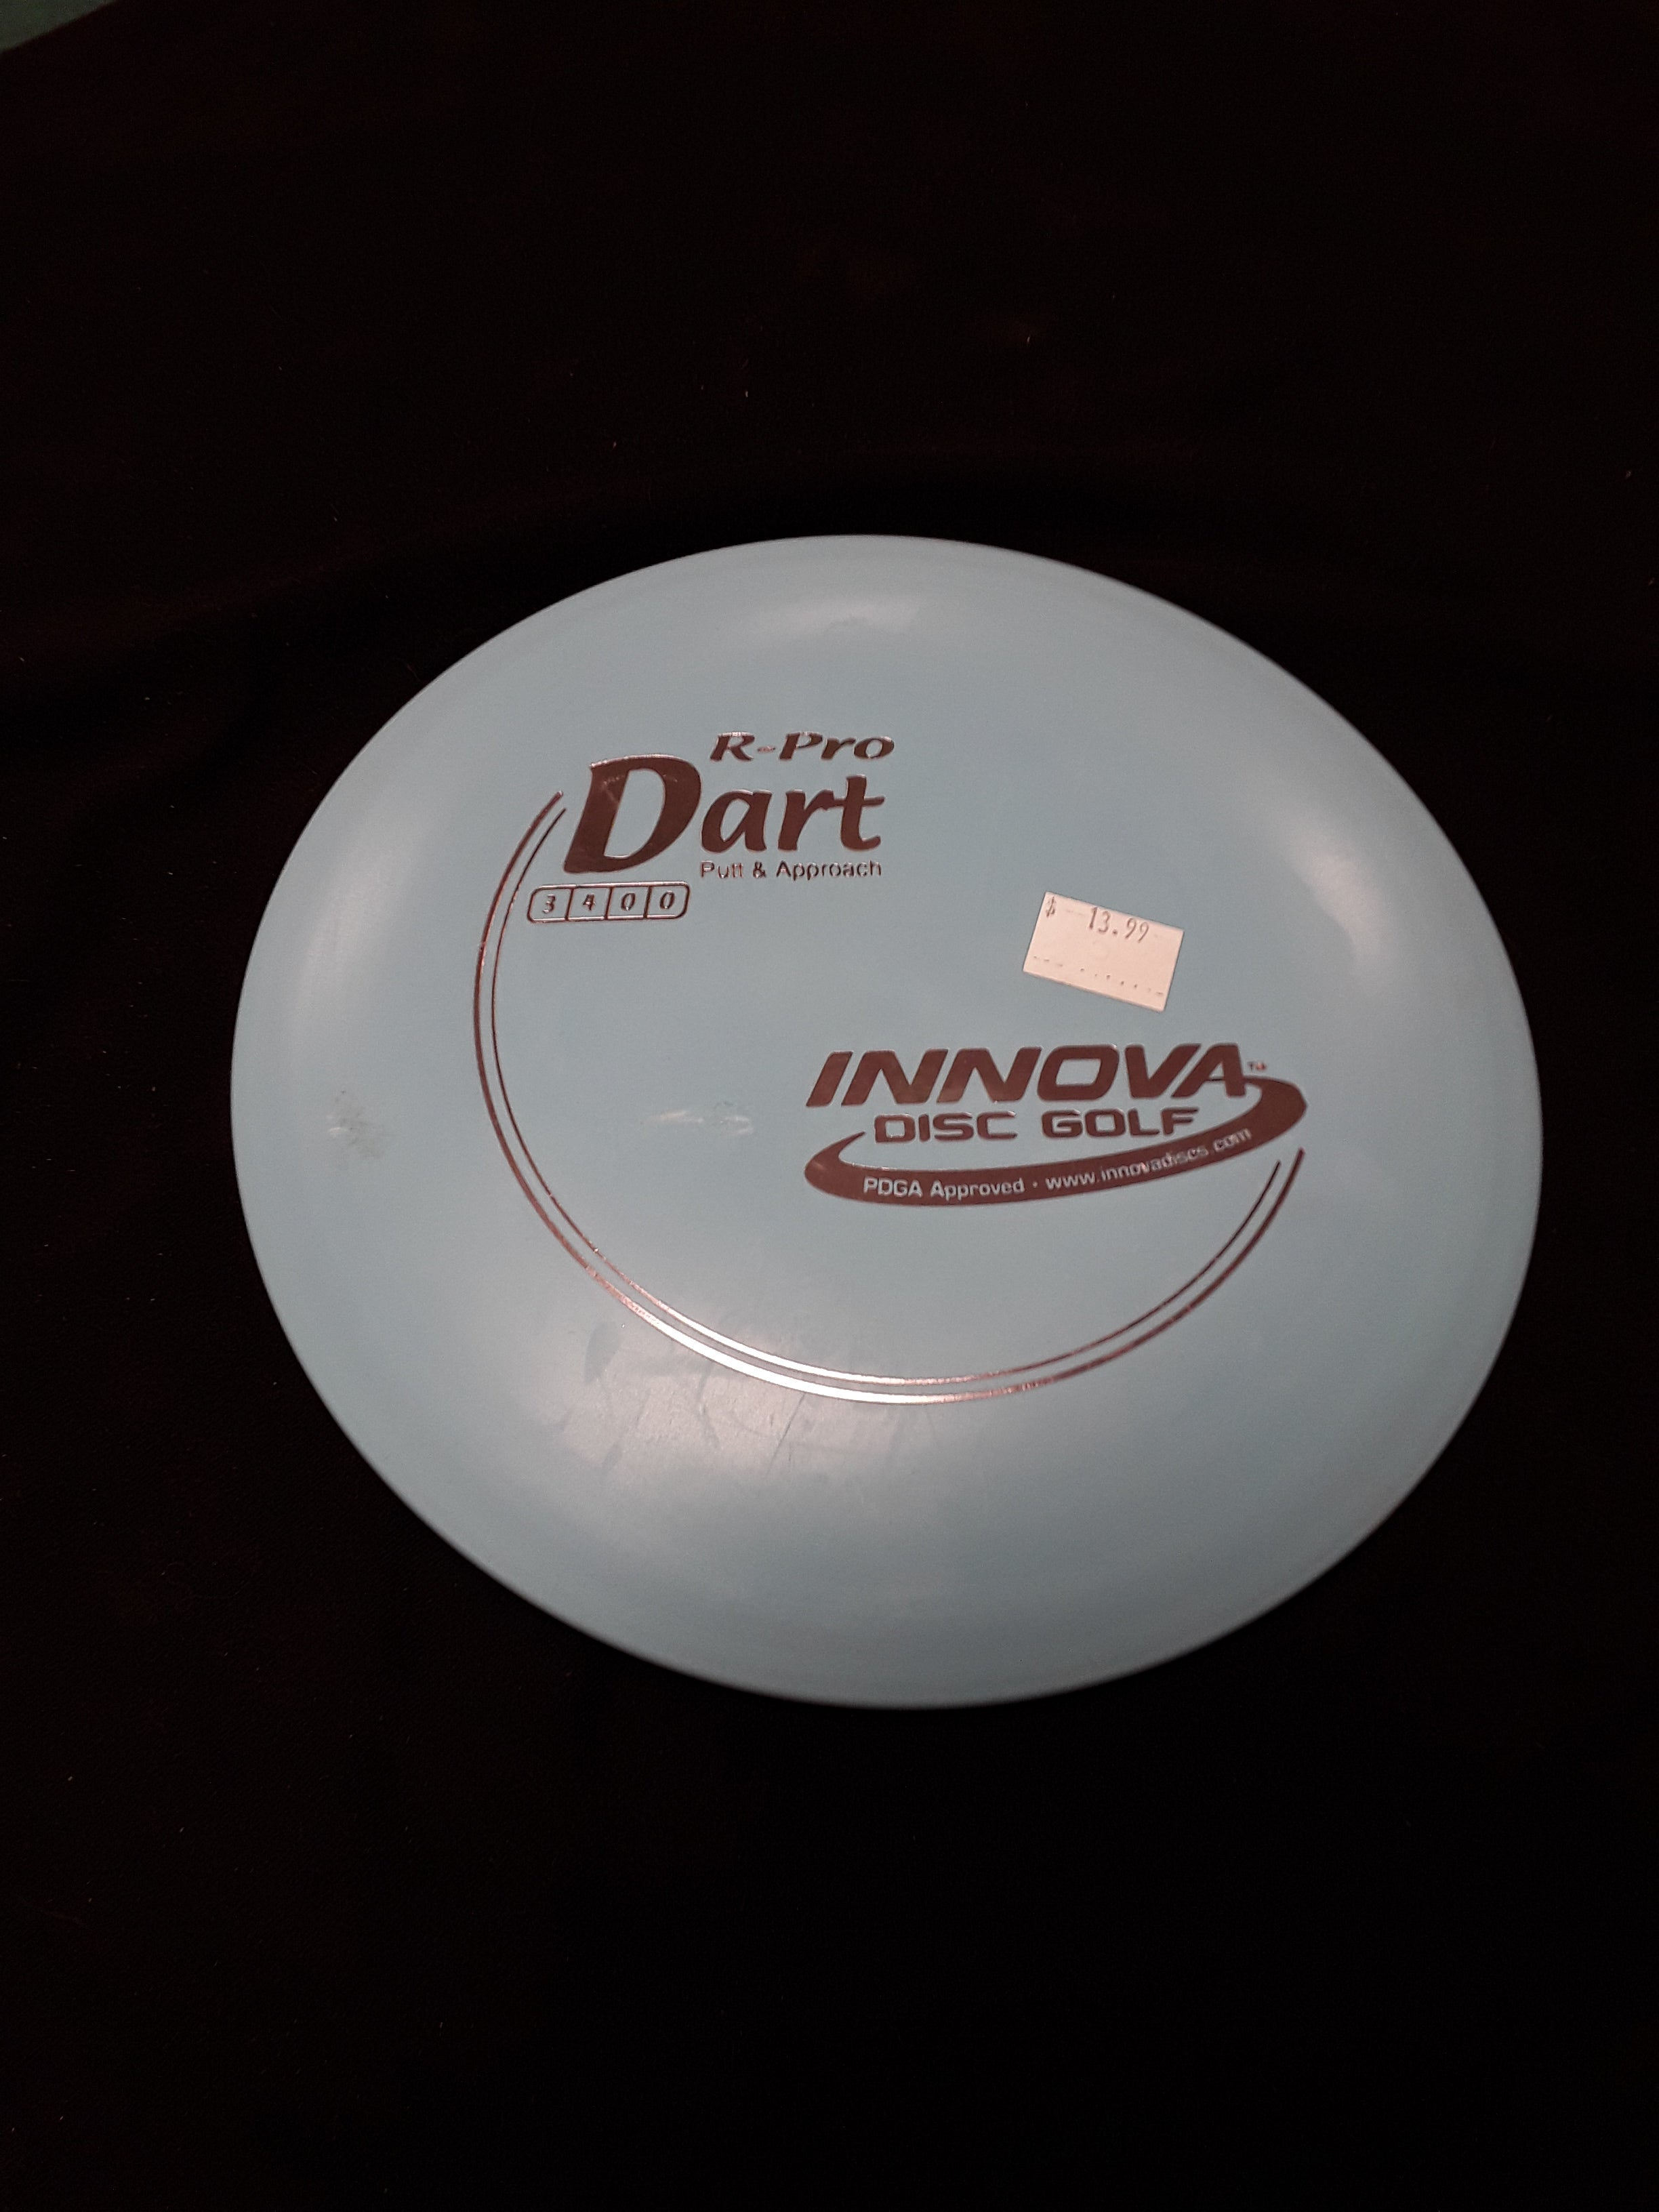 Innova R-Pro Dart Puttand Approach Light Blue